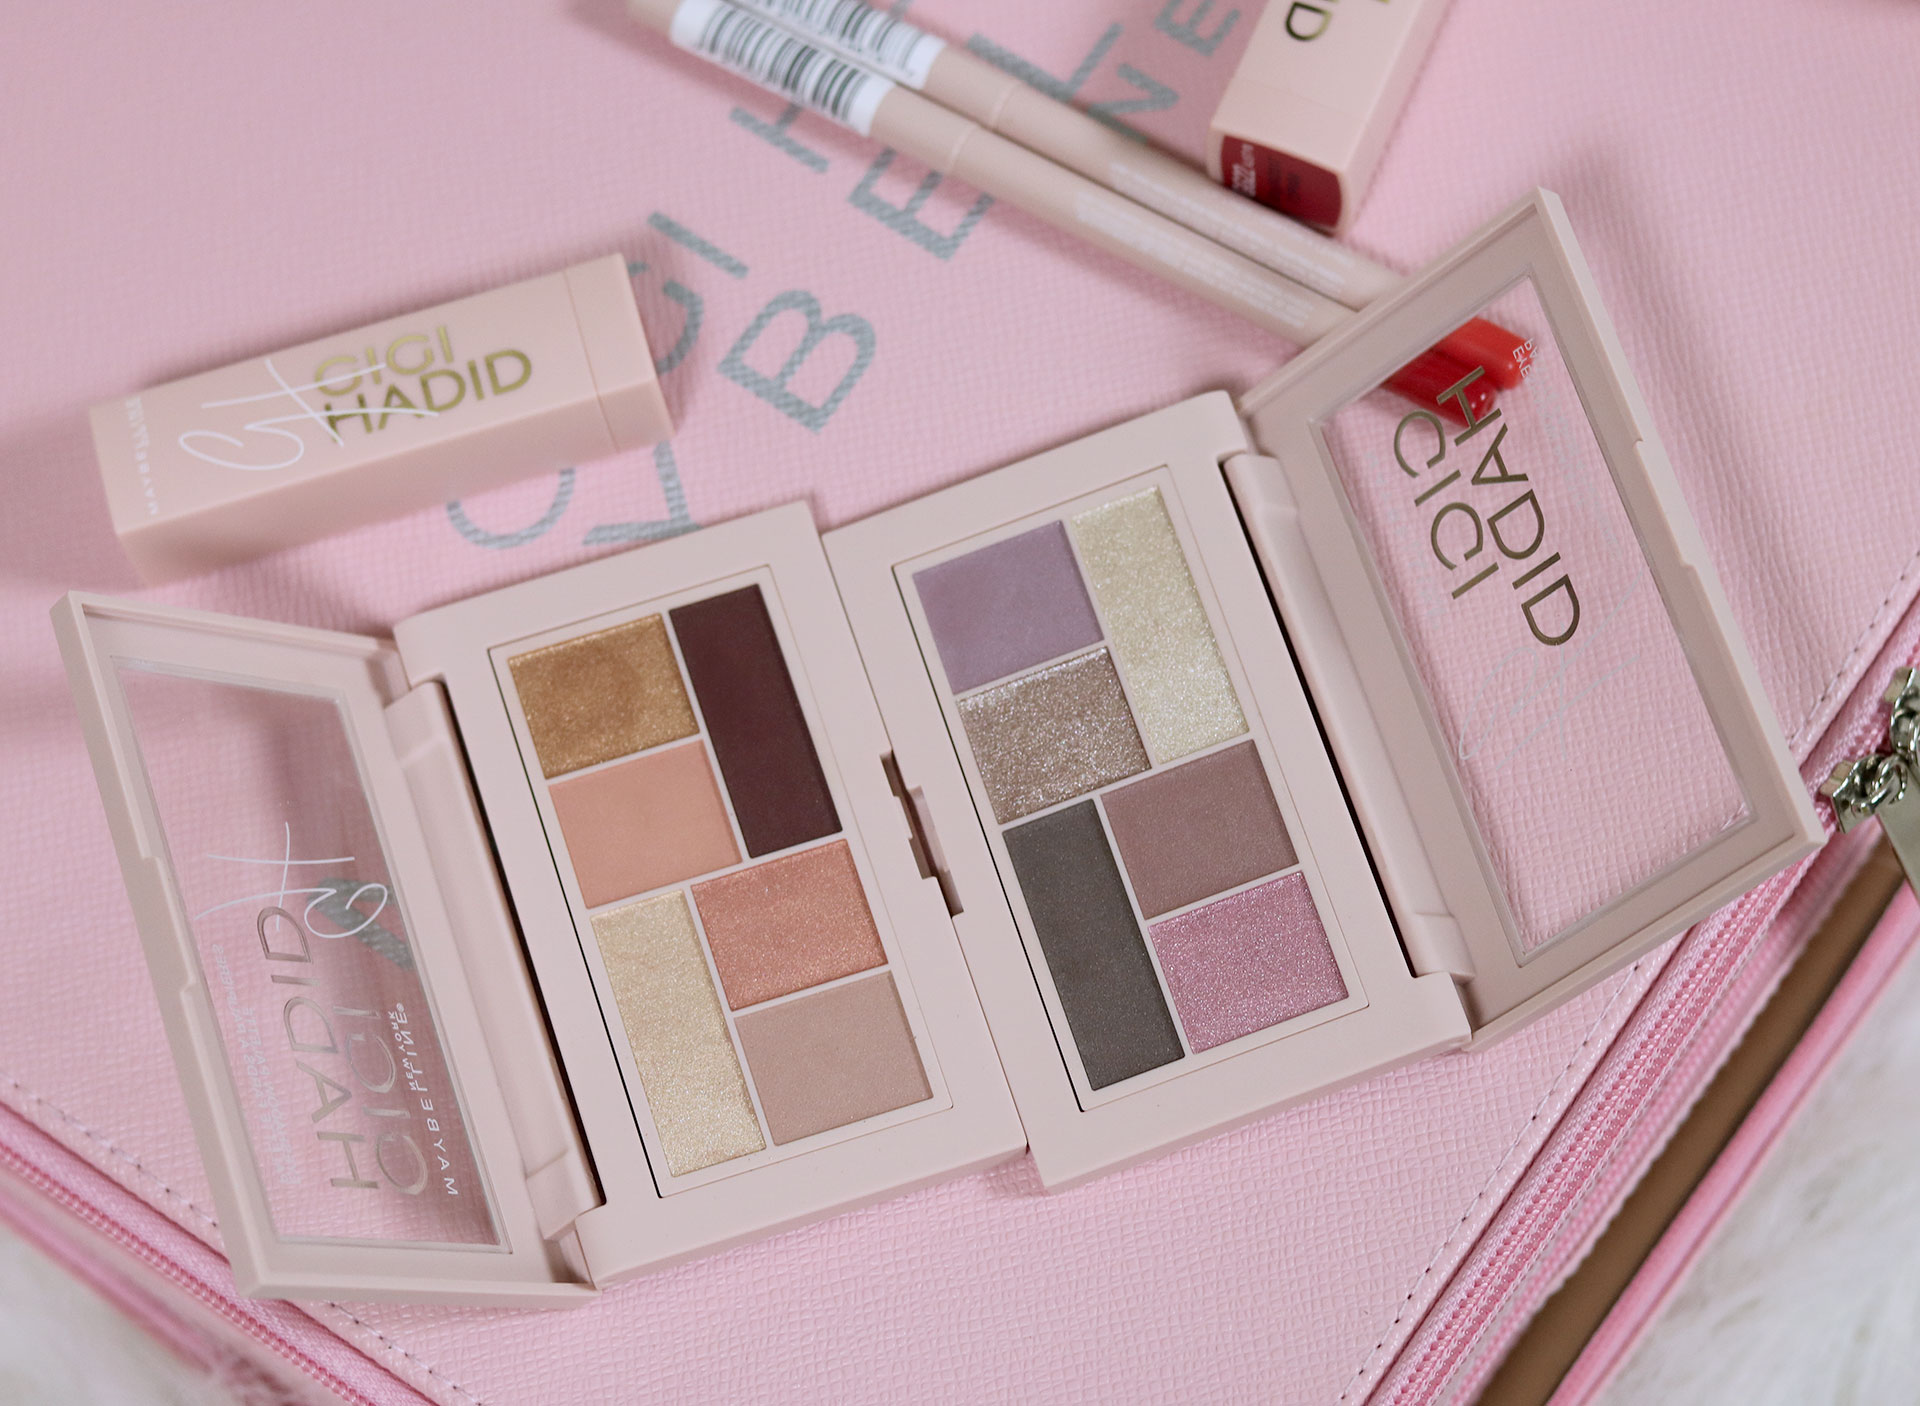 38 Gigi Hadid Maybelline Collection Review Swatches Photos - Gen-zel She Sings Beauty